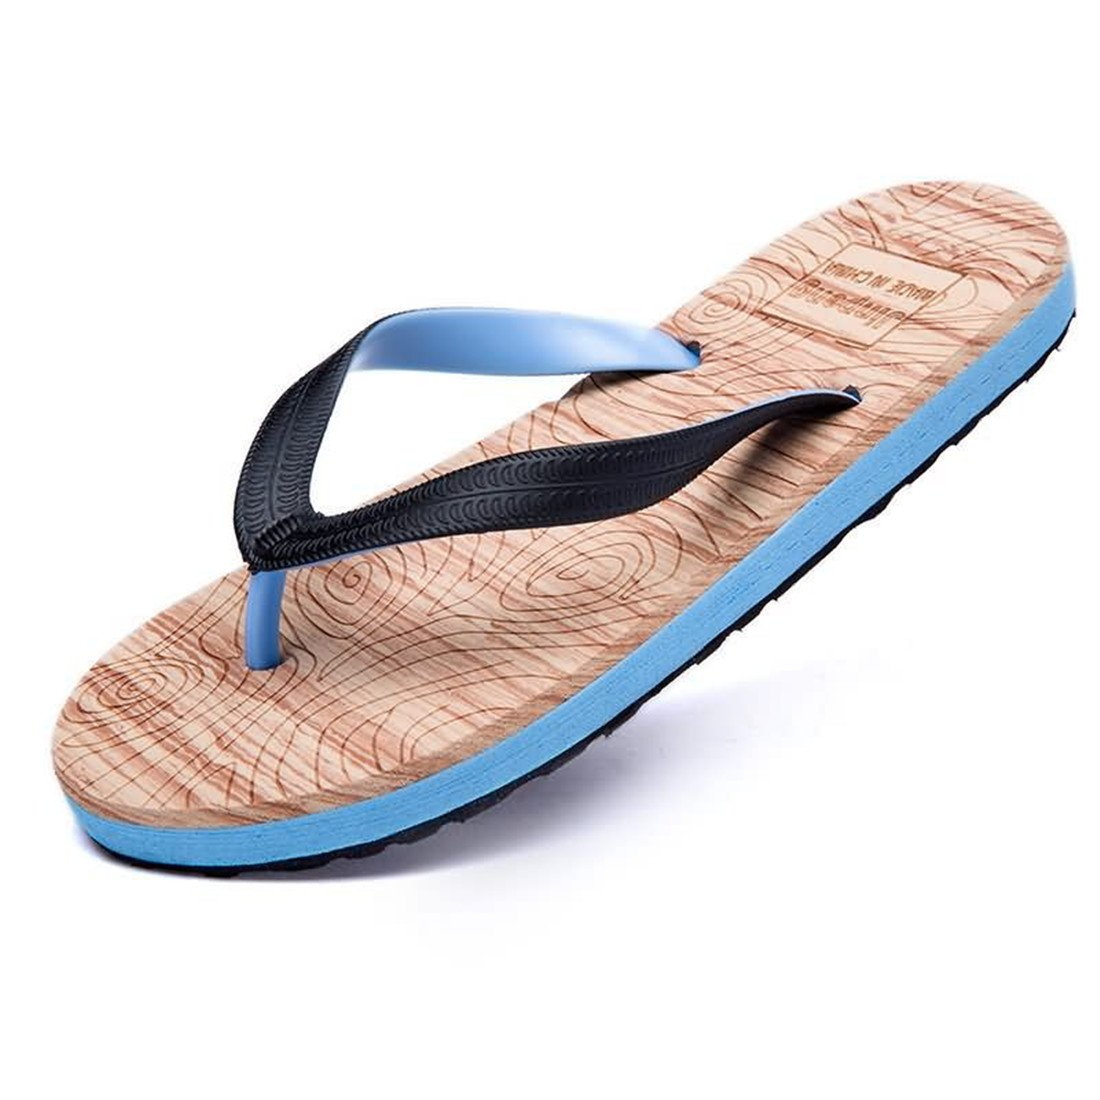 30db41b1fca37c Yingniao Men s Lightweight Flexible Slippers and Comfort Thong Sandals  Shoes Flip Flops Blue 44  Amazon.co.uk  Shoes   Bags